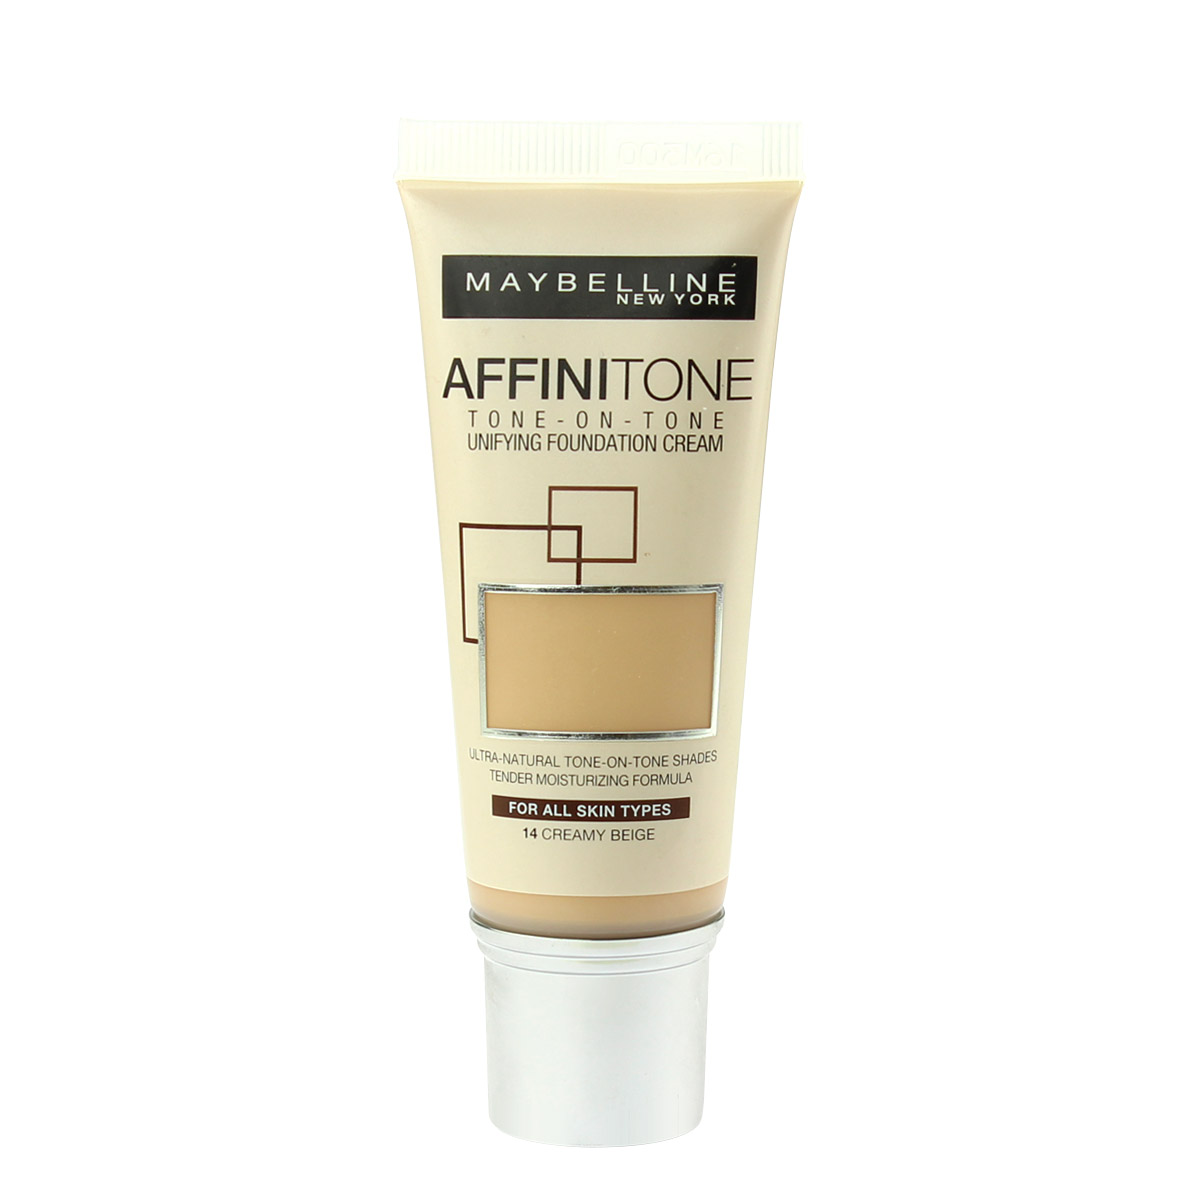 Maybelline Affinitone Unifying Foundation Cream (14 Creamy Beige) 30 ml